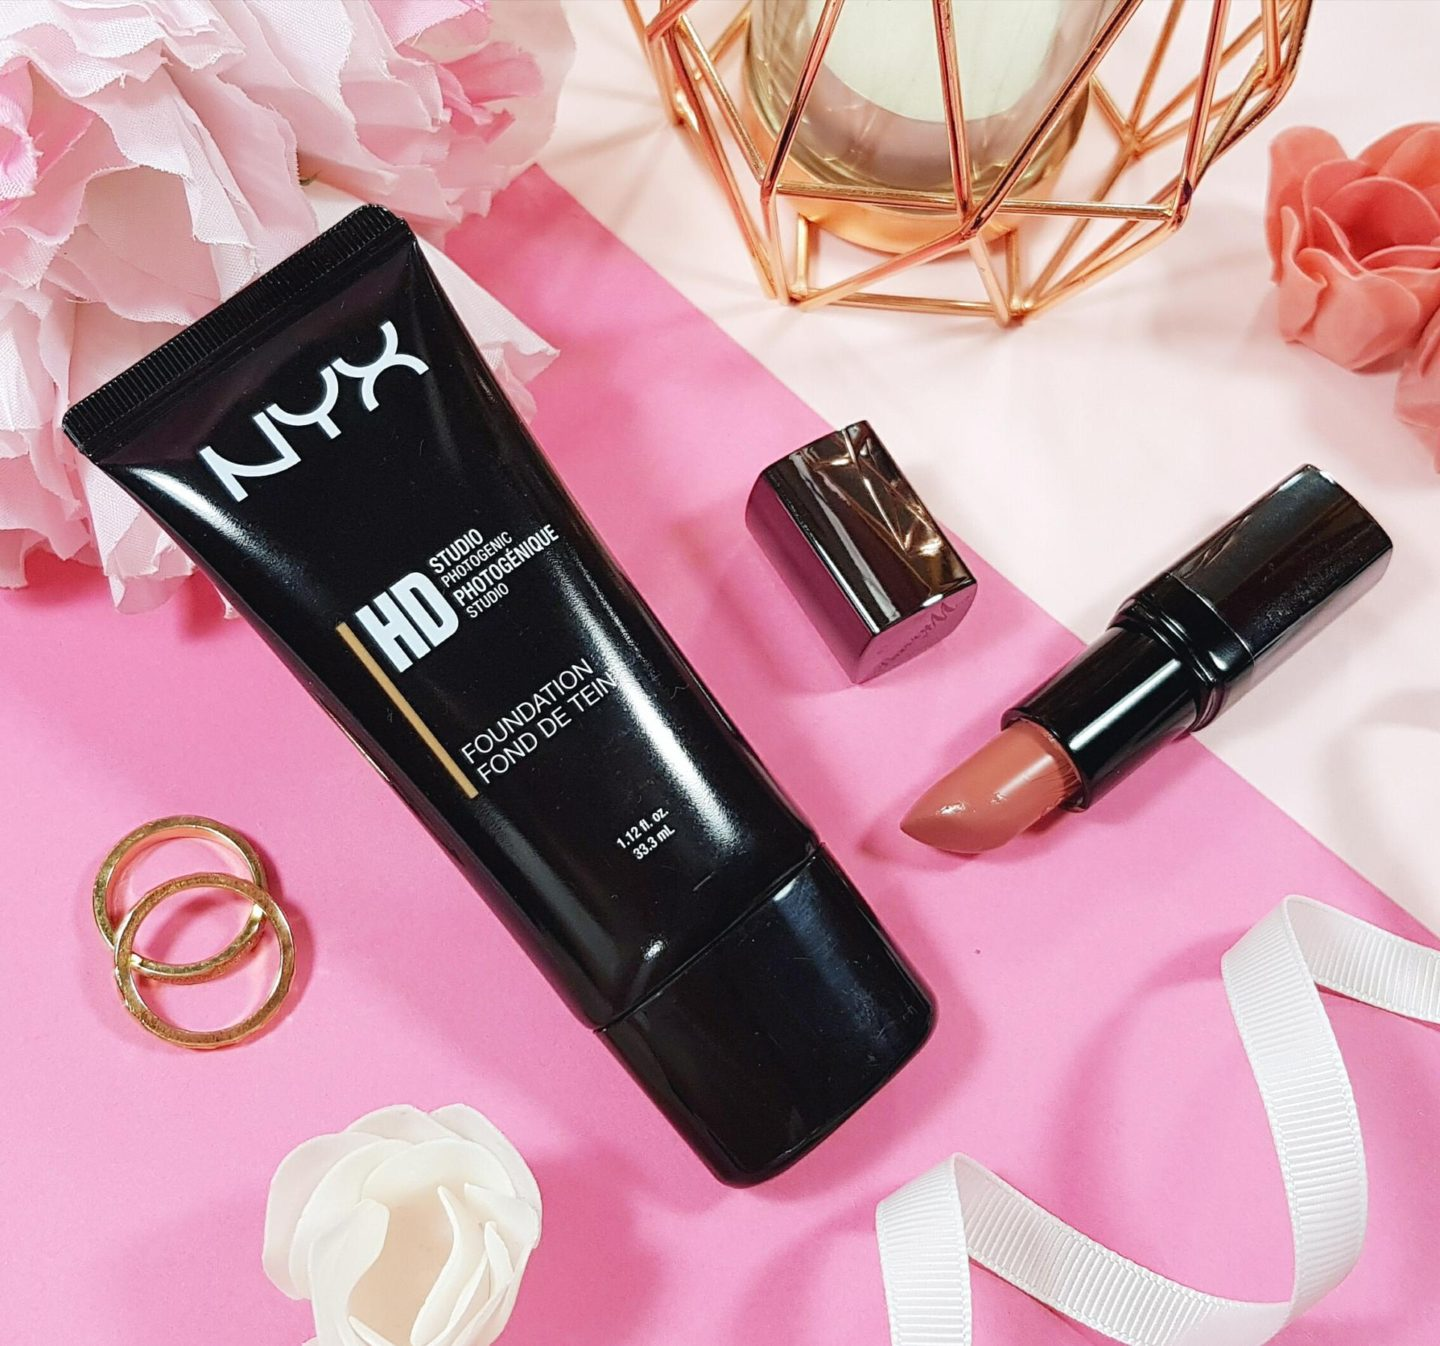 NYX HD Foundation and Barry M Lipstick Mannequin